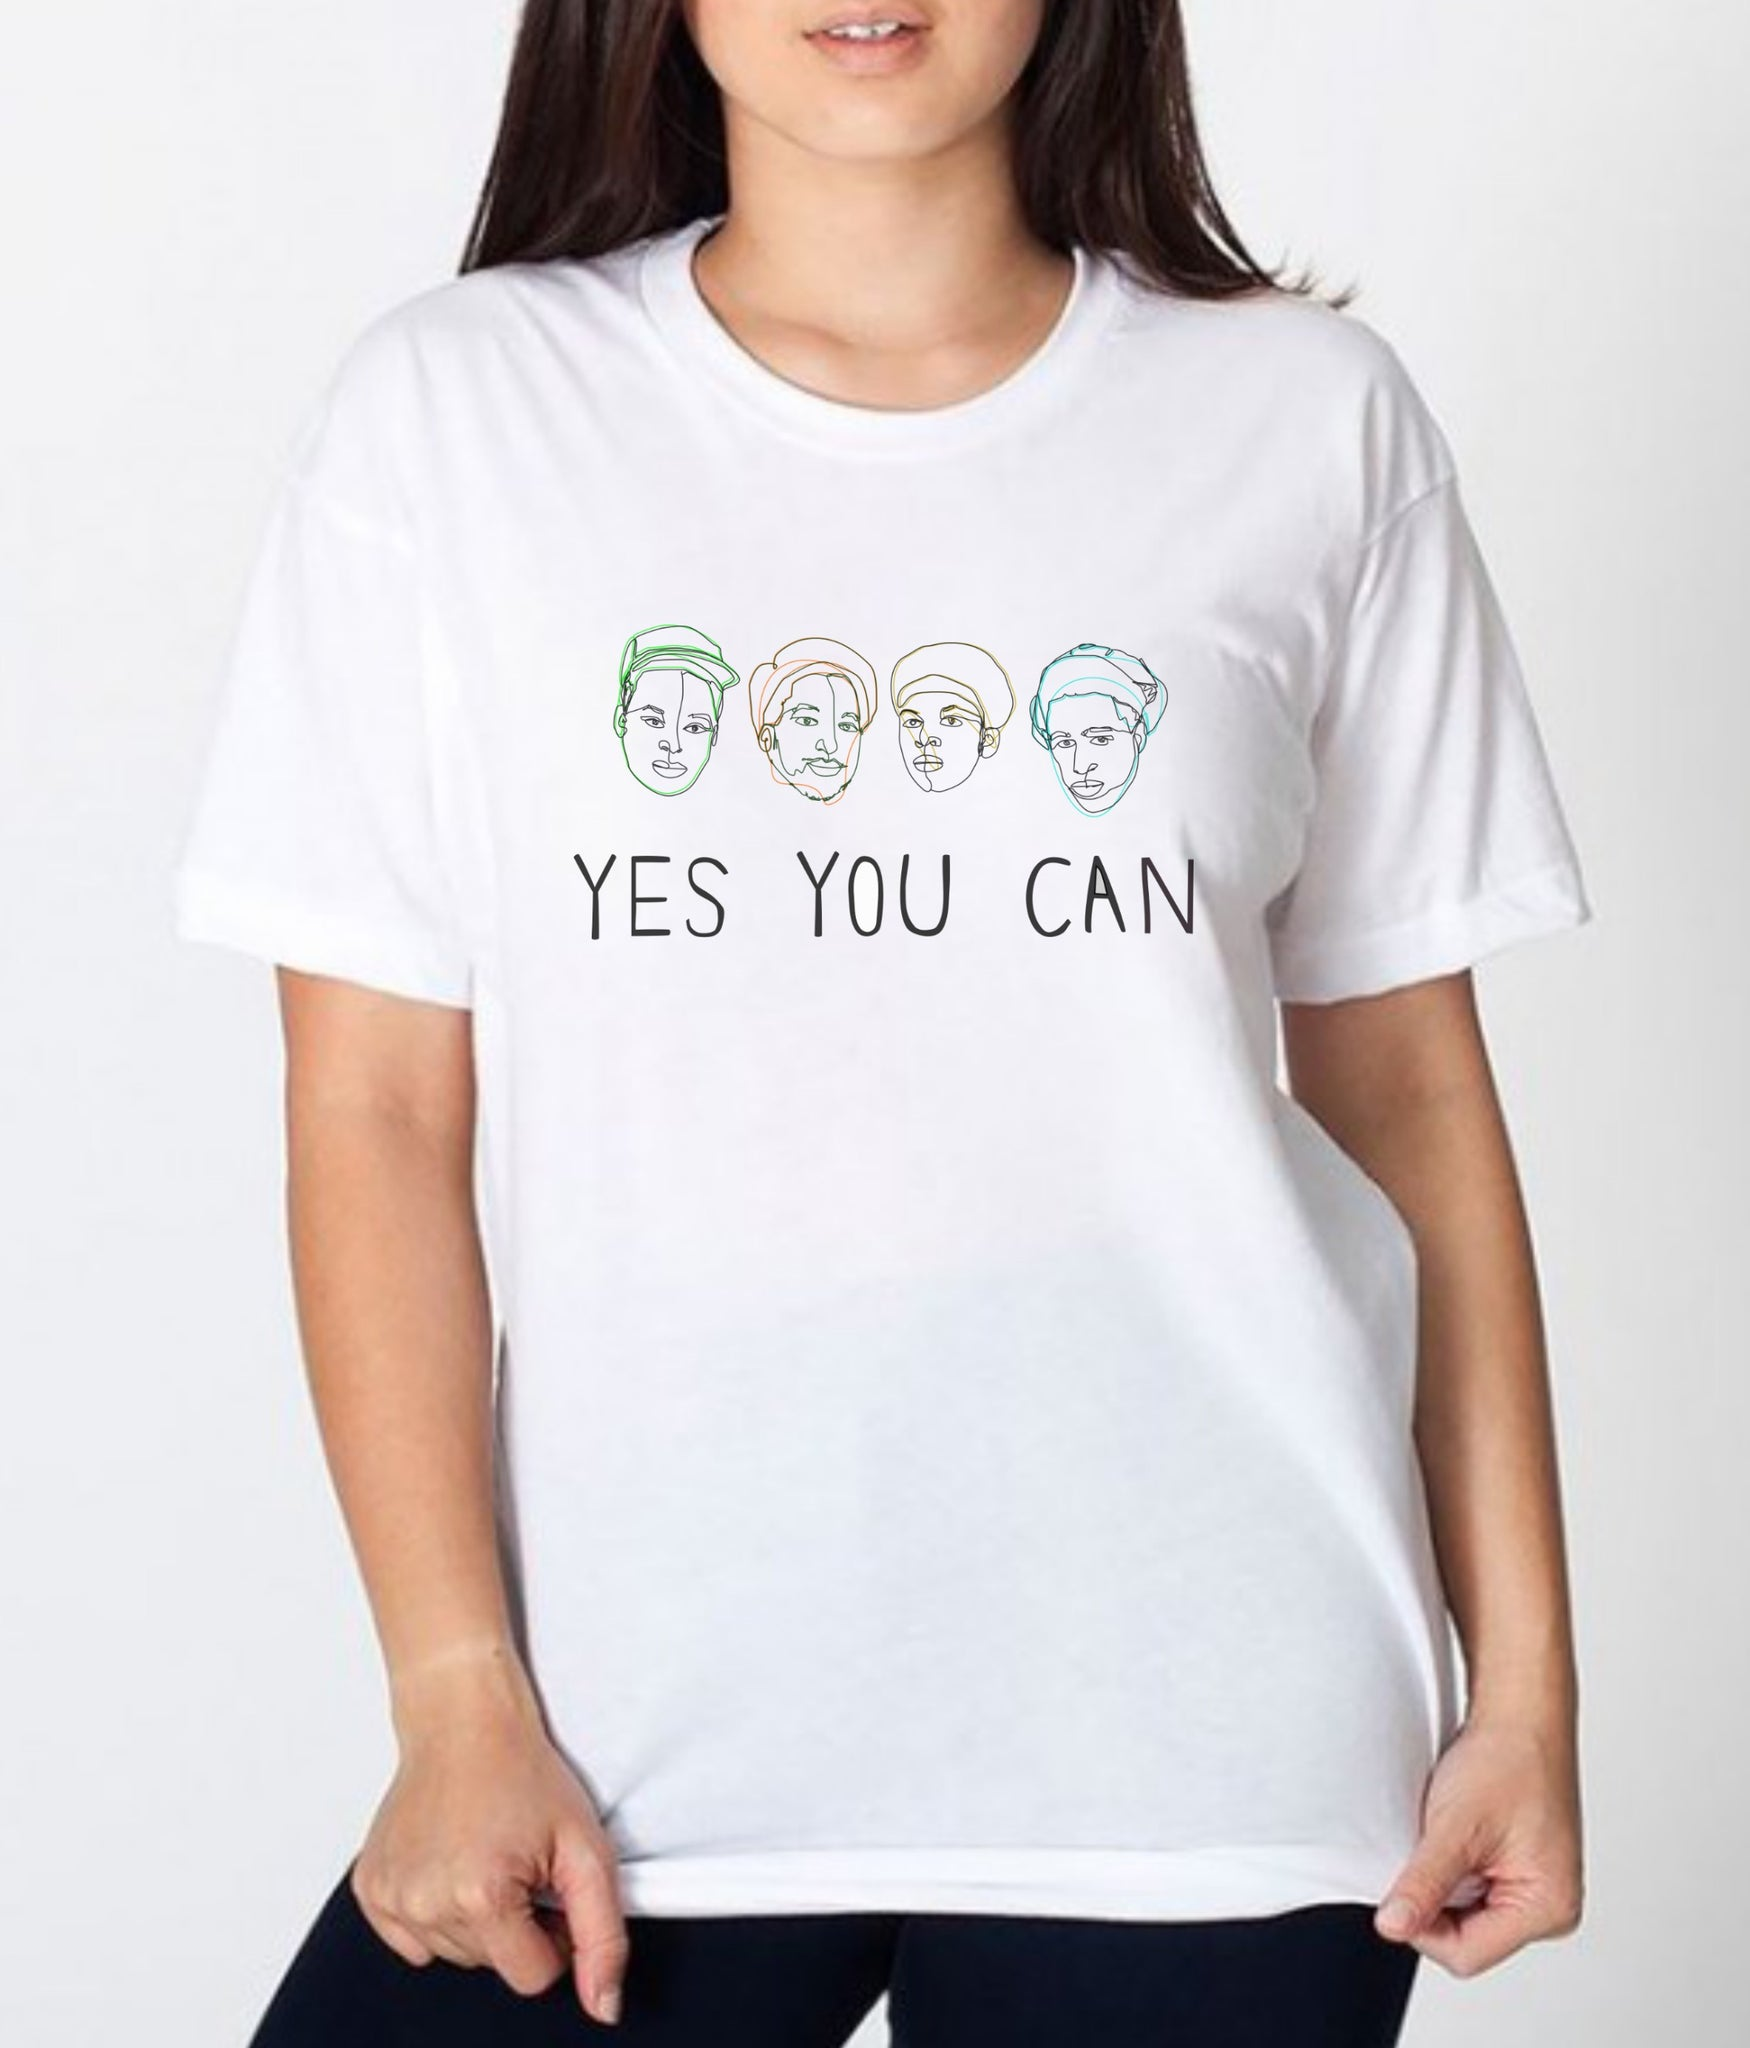 ATCQ Yes You Can T-Shirt (Print on Demand)